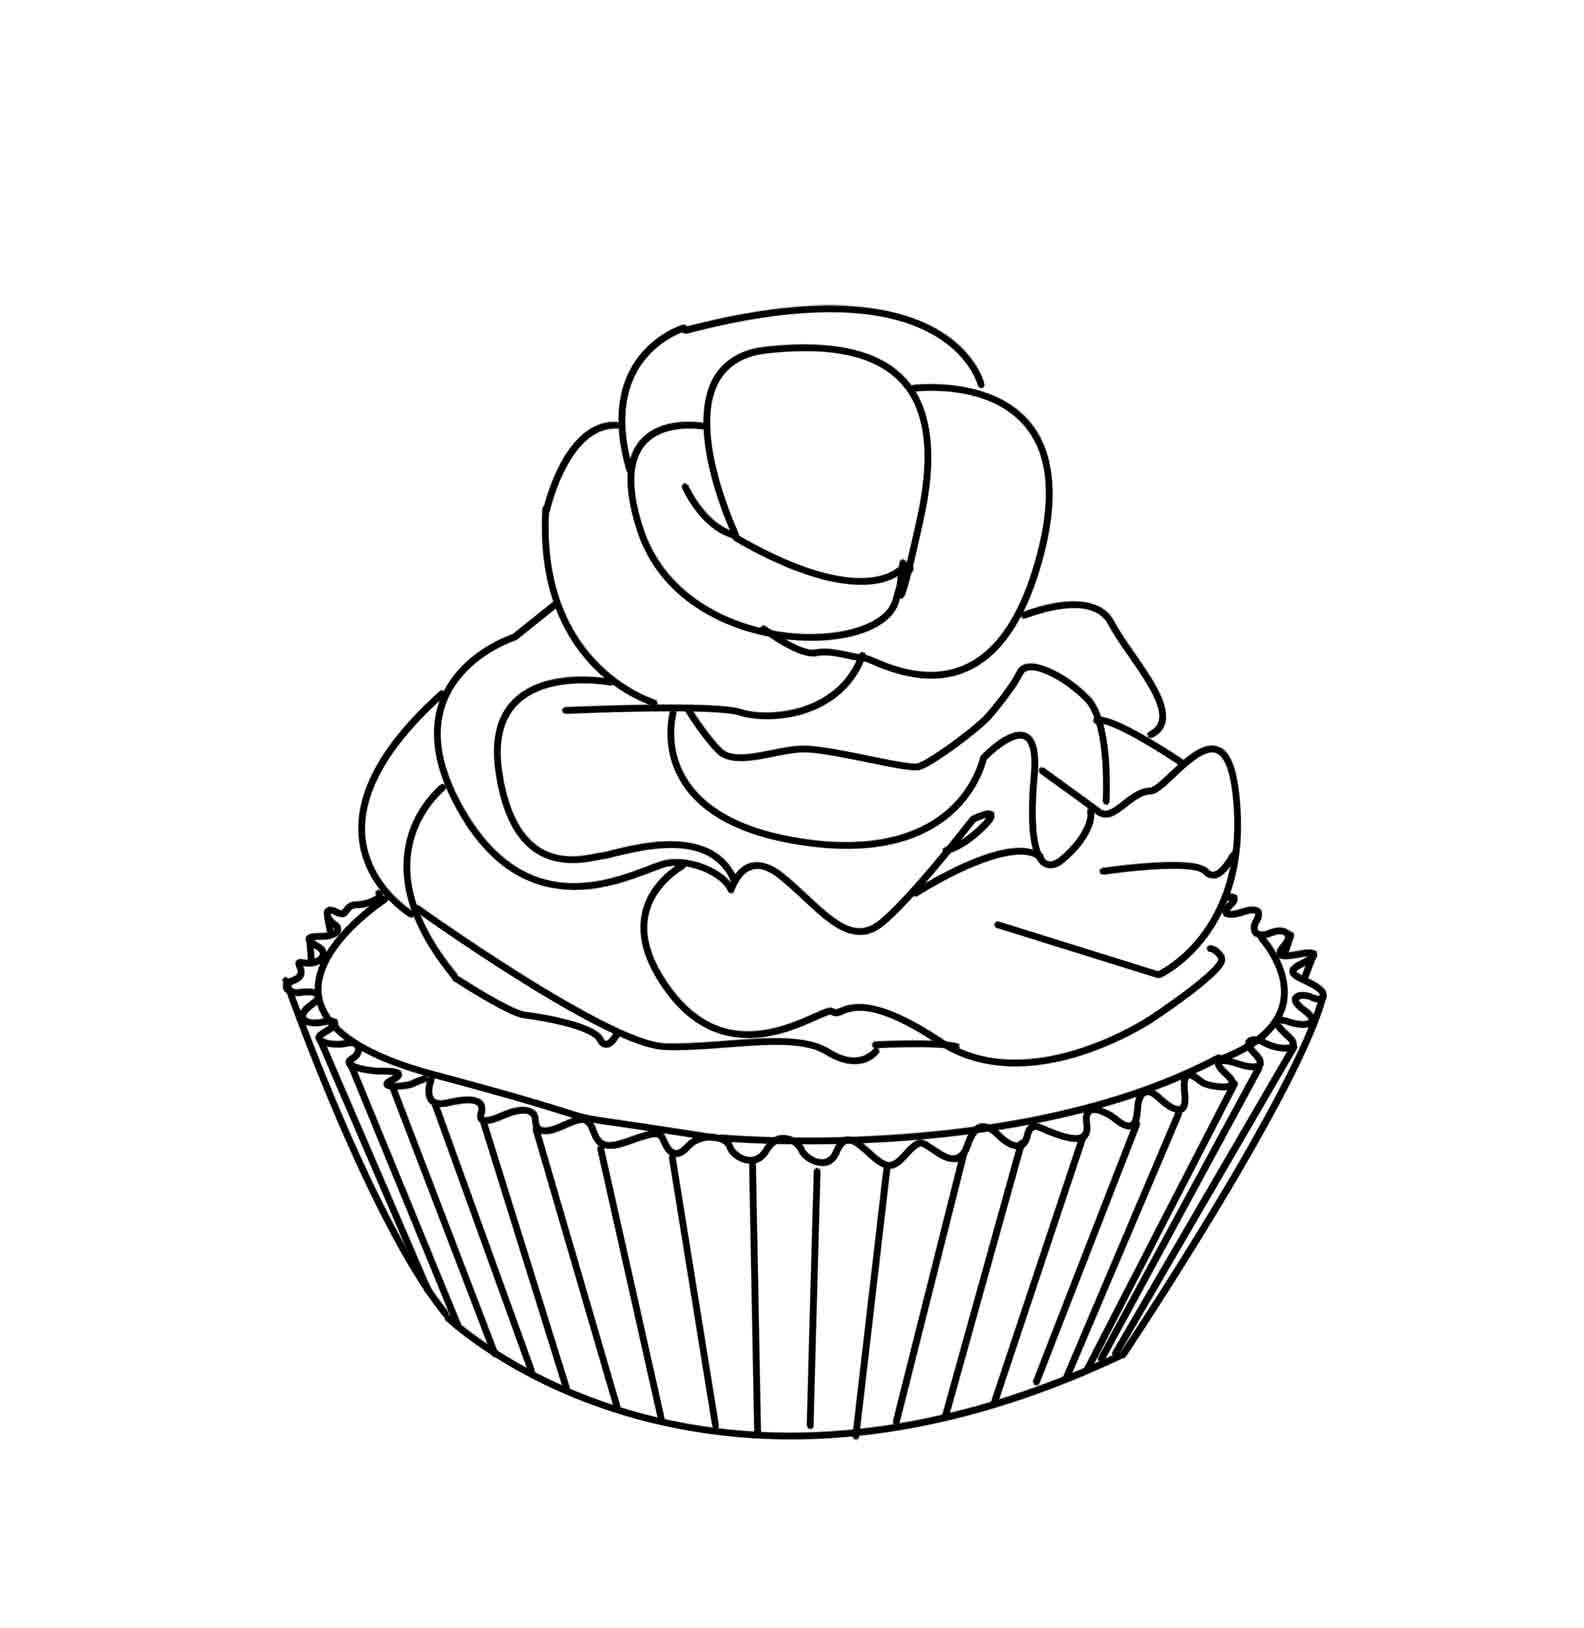 cup cake coloring pictures free easy to print cupcake coloring pages tulamama pictures coloring cake cup